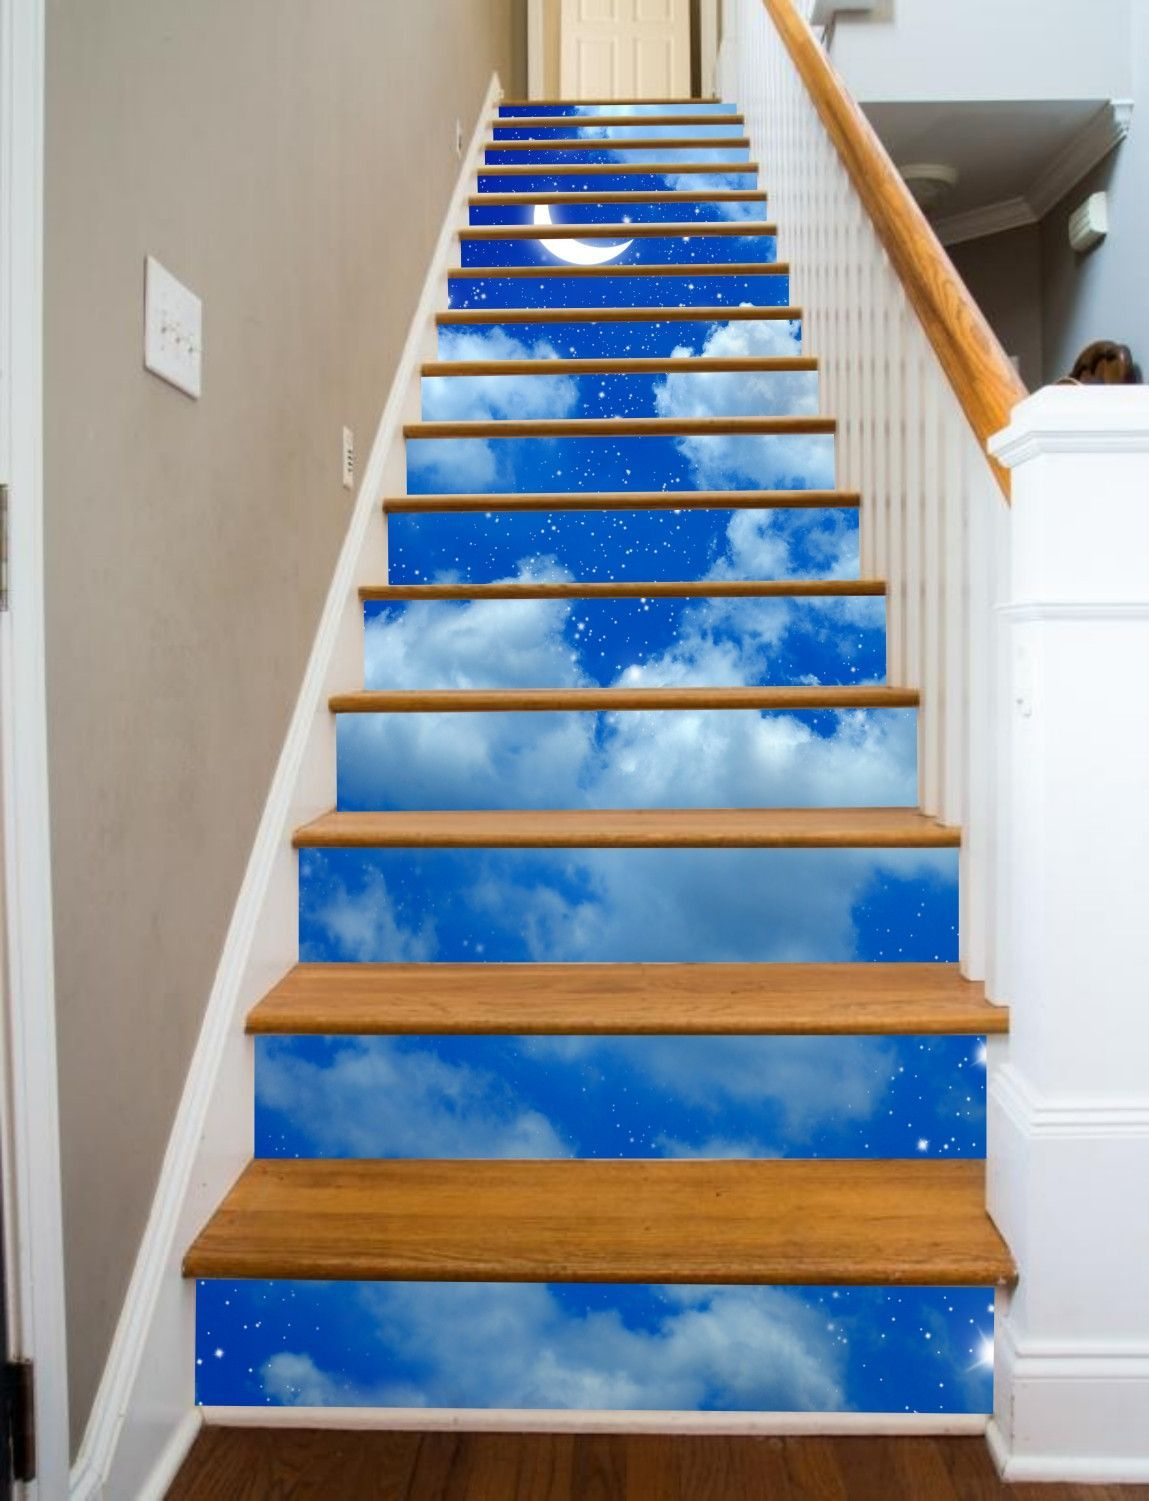 Wish upon a star! At last, a way to make your stairways beautiful! RiserArt presents these specially designed art creations perfect for making your stairway a conversation piece. Each stairway consist